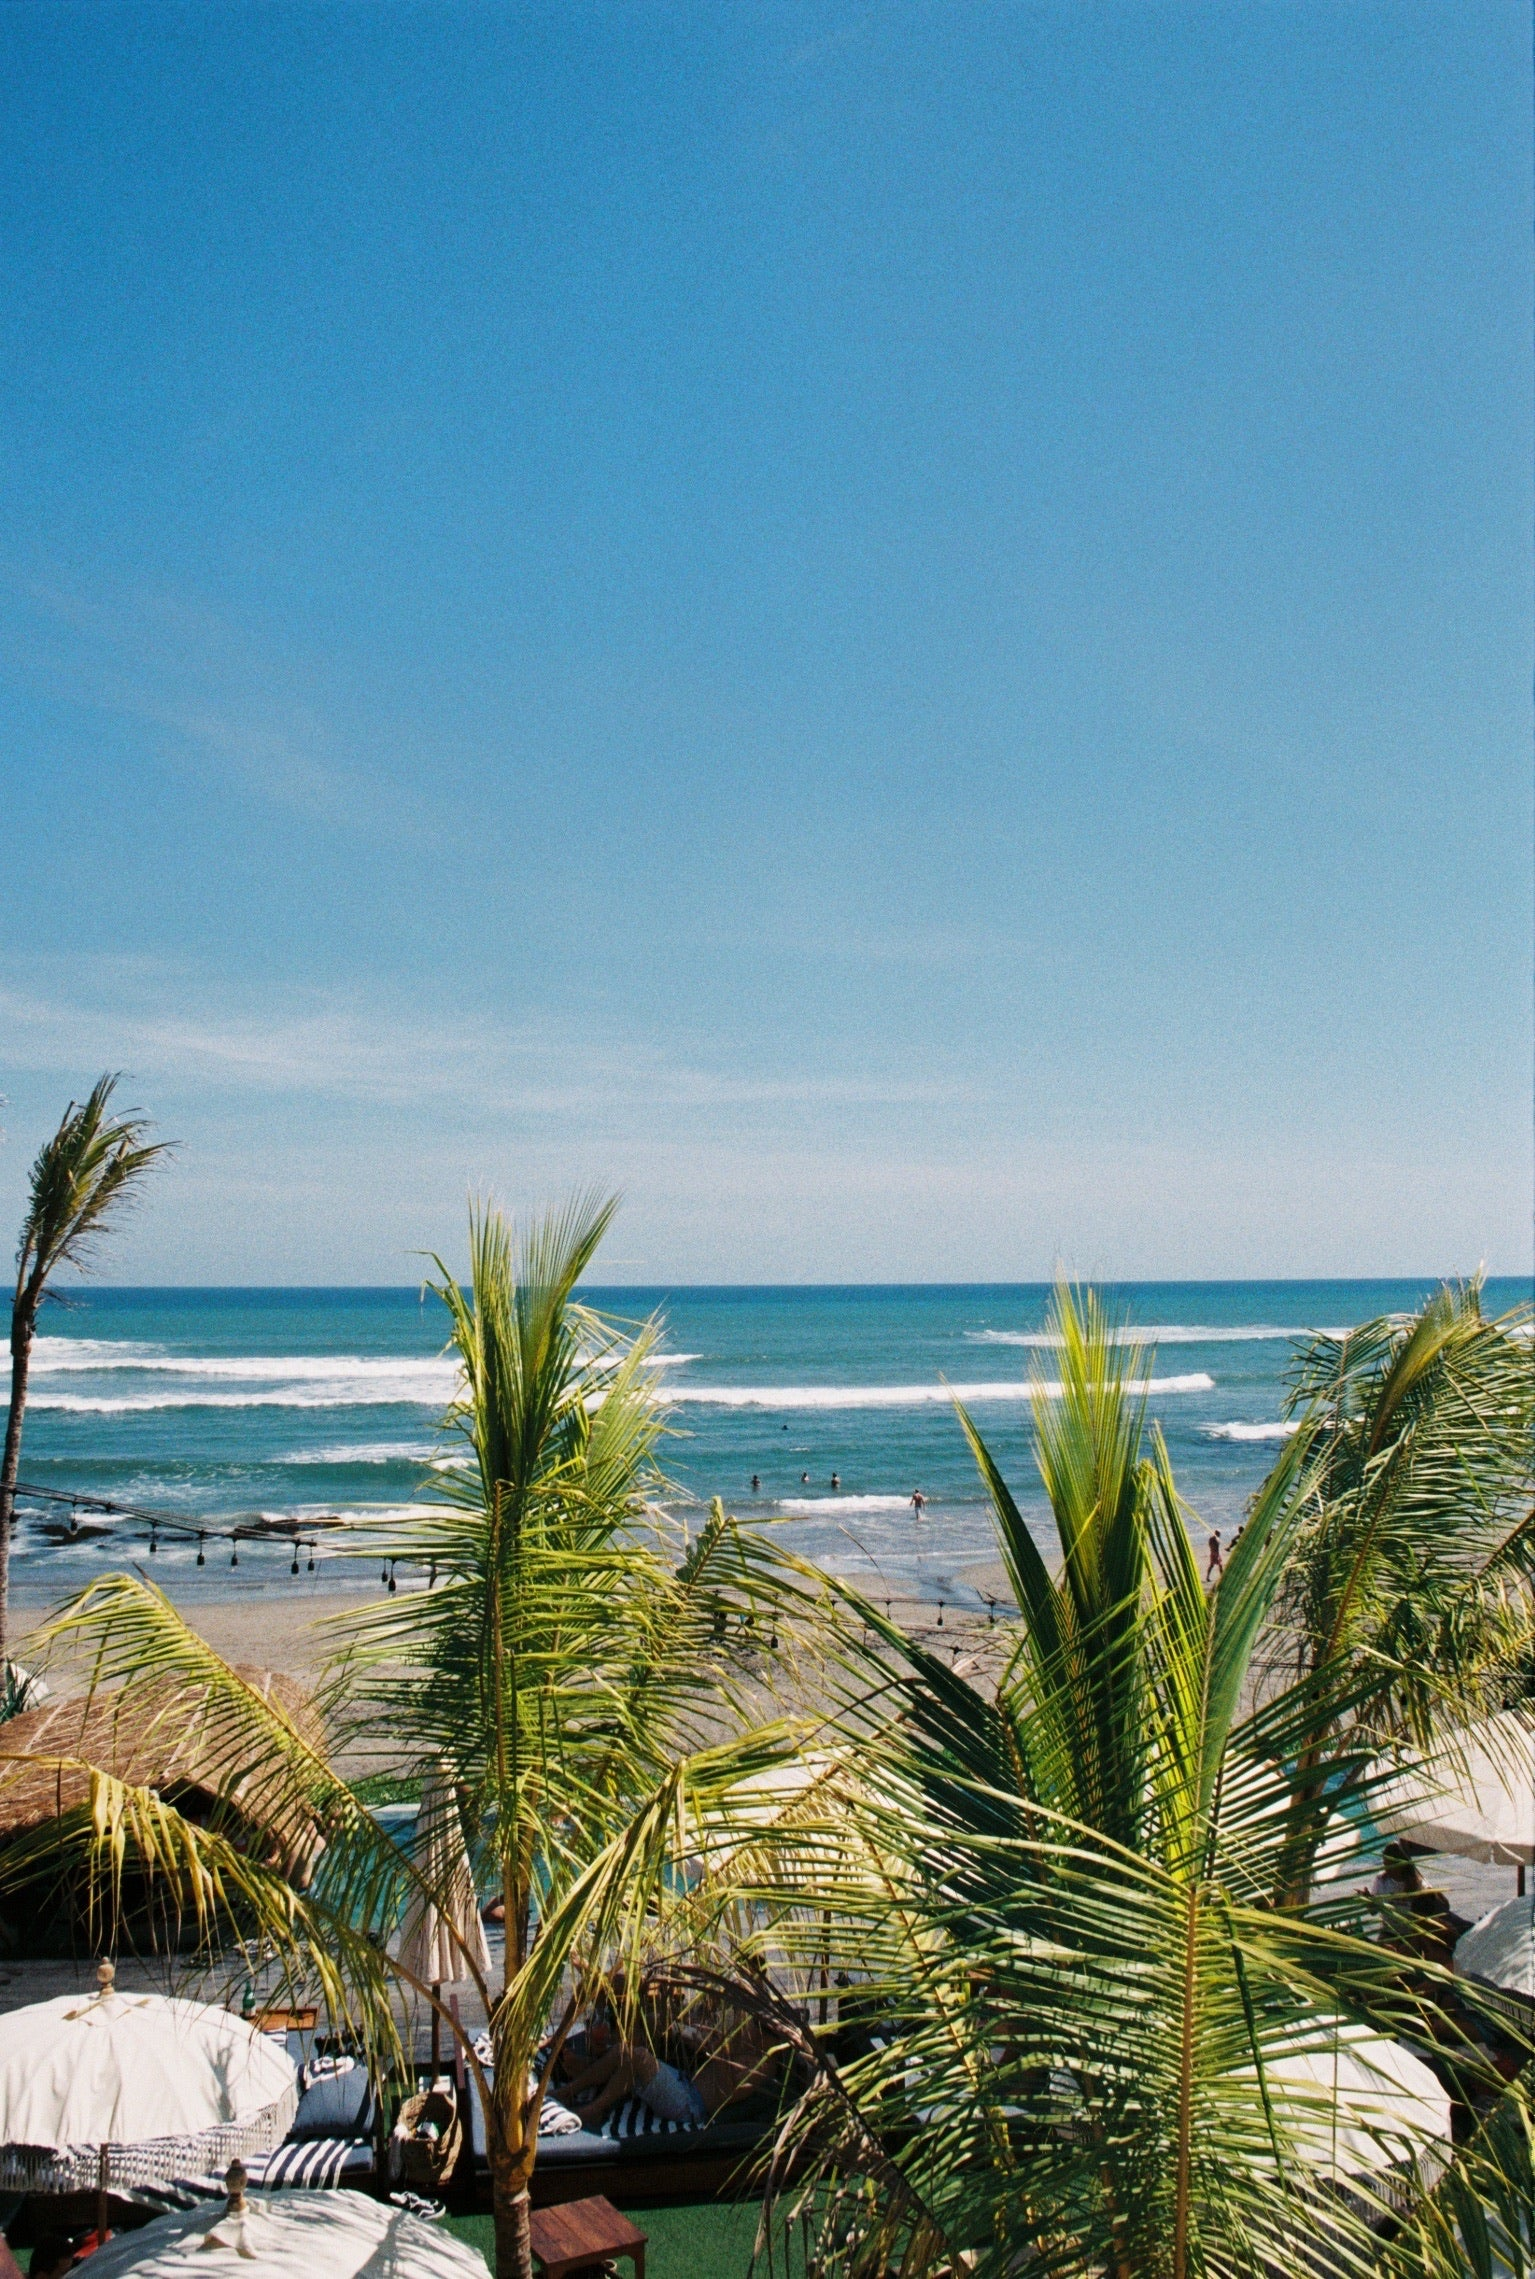 Let's go! The all you need-to-know Bali checklist.